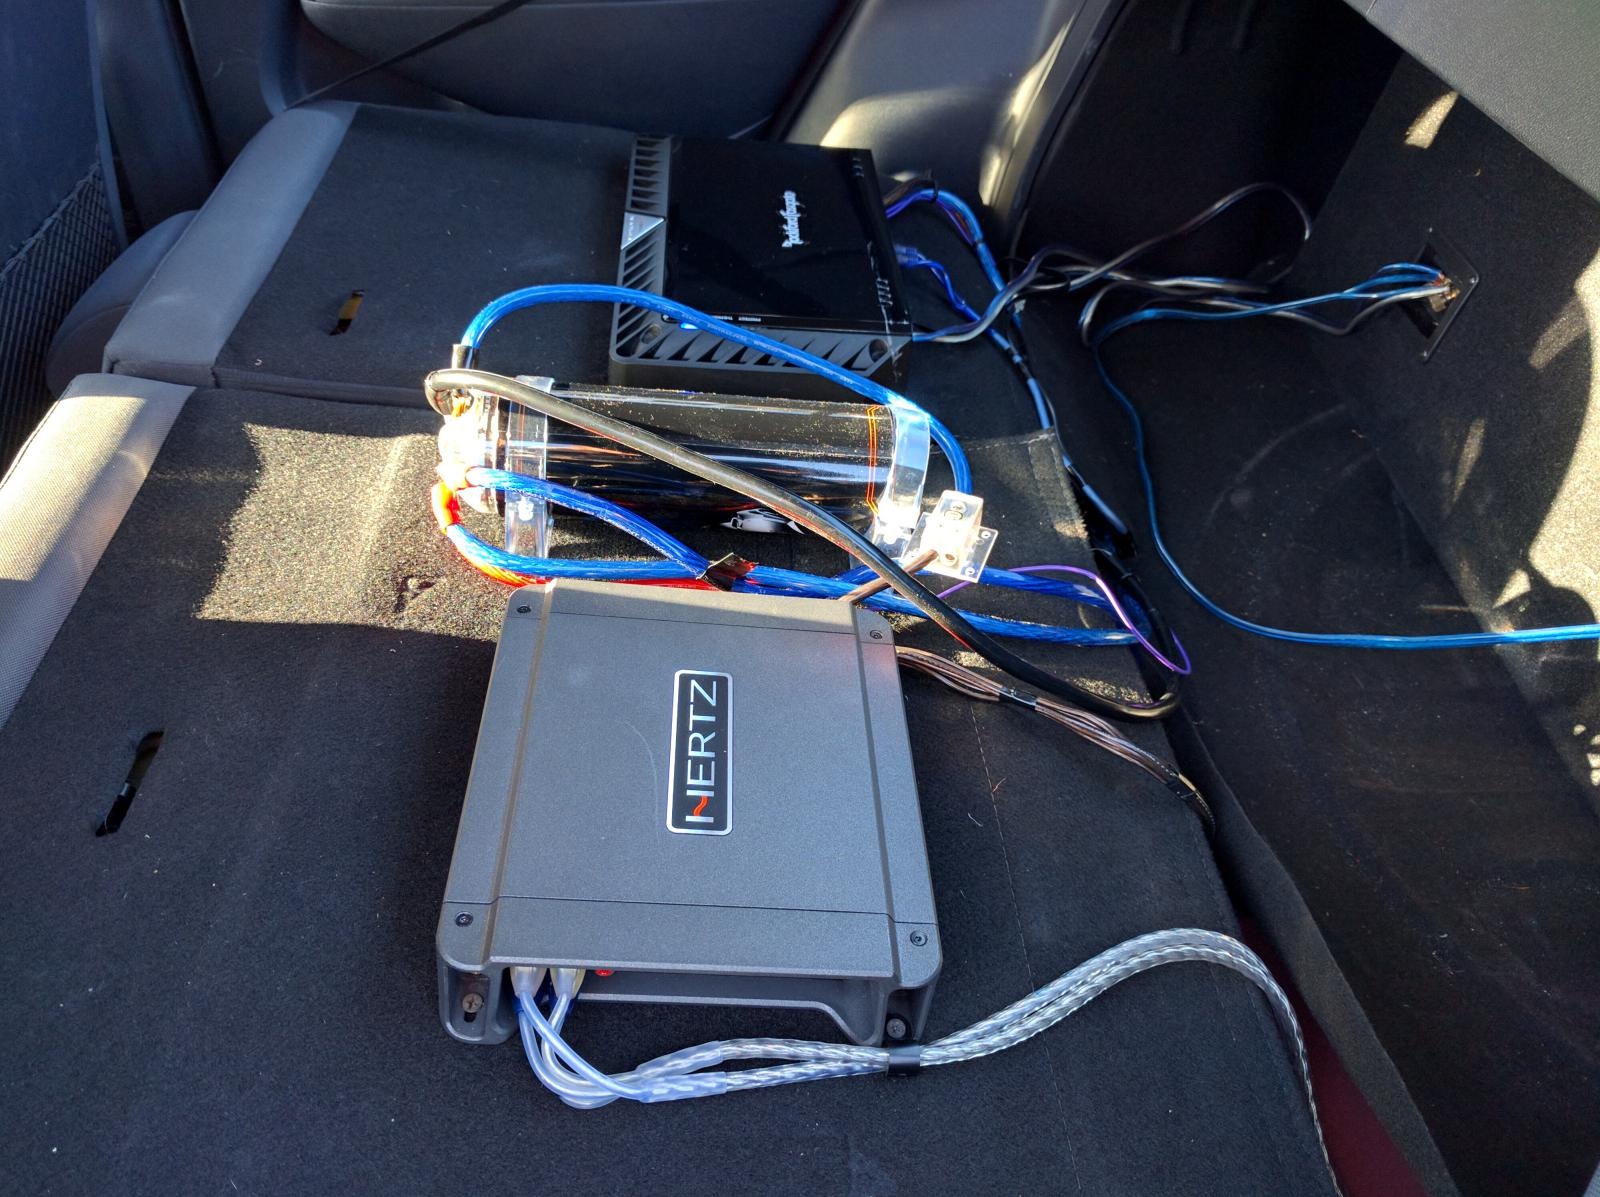 Help W Stereo Install 2013 Rio Sx 5dr Hatch Kia Forum Pioneer Car Wiring Adapters Img 20160329 175905